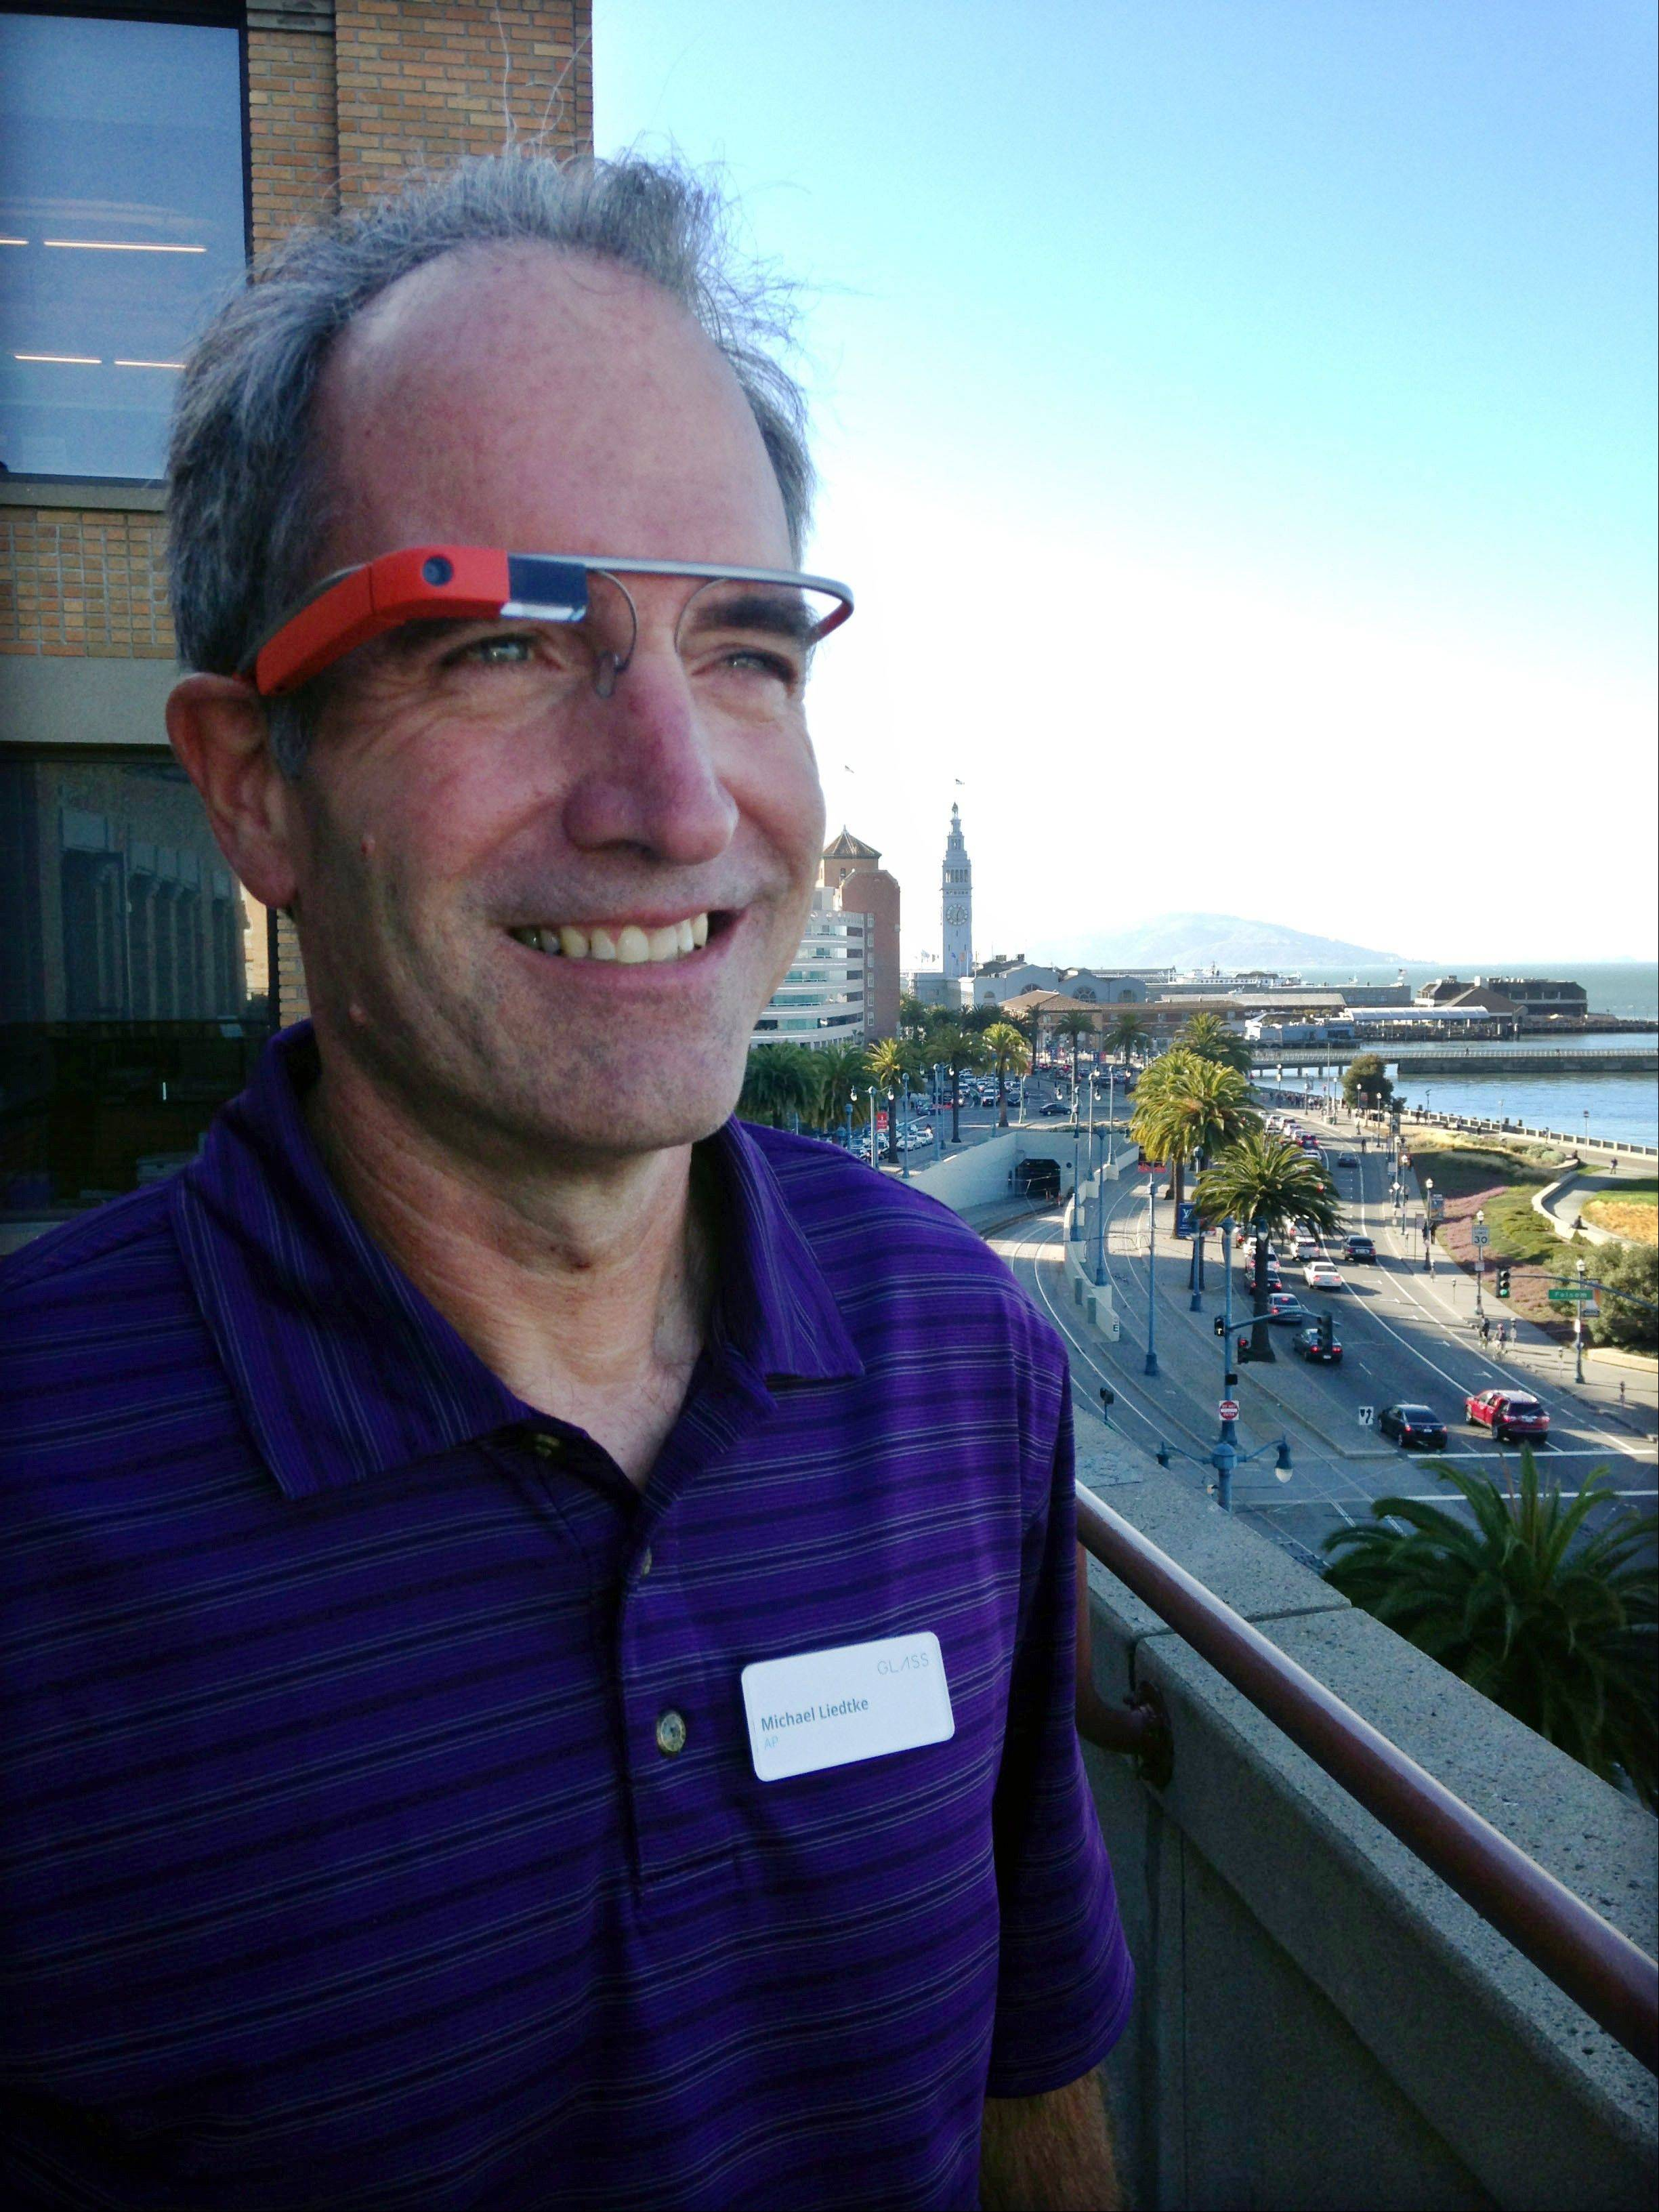 Associated Press reporter Michael Liedtke models Google Glass at a Google base camp in San Francisco. Google Inc. is touting Glass as a liberating breakthrough that will make technology more convenient and less obnoxious in social situations than checking a smartphone to see what's happening in your digital realm.